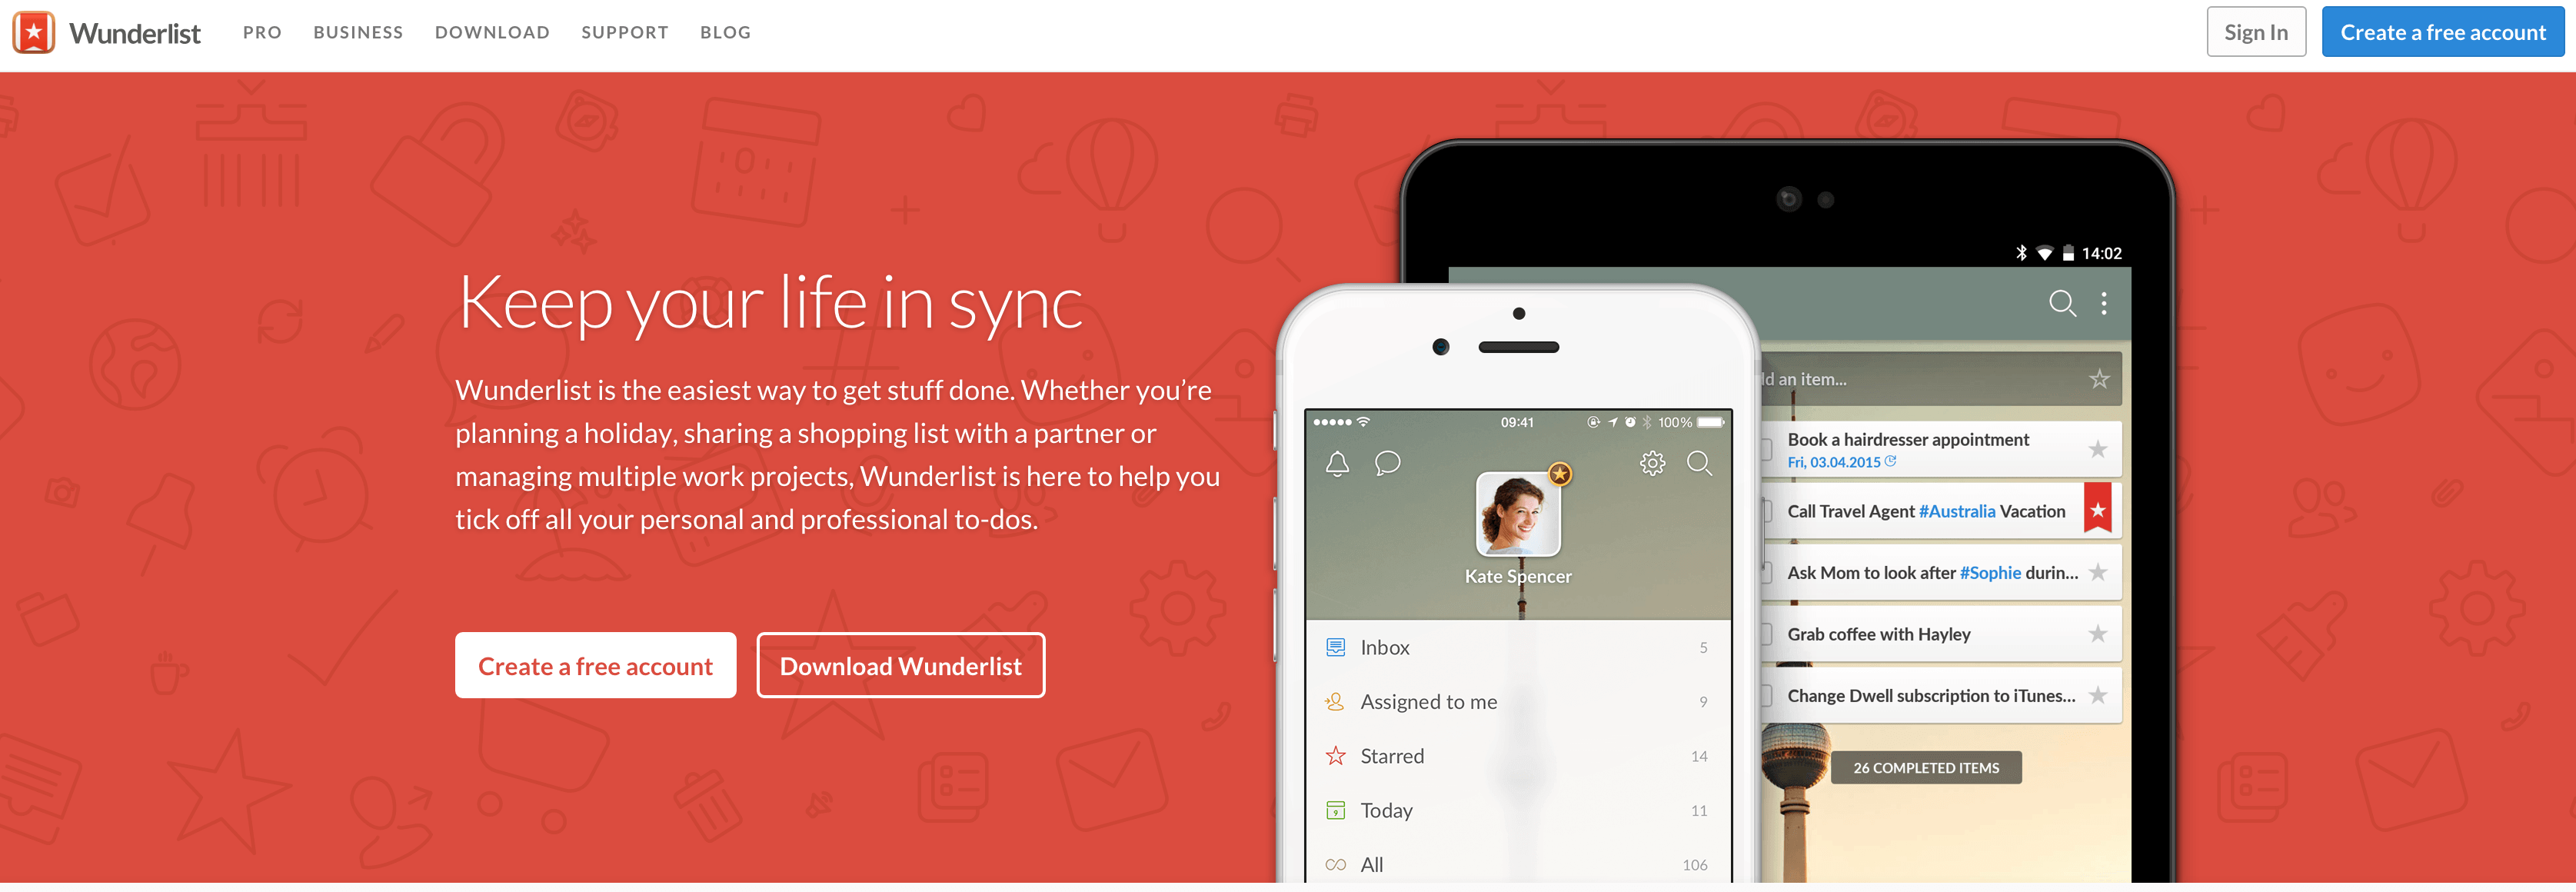 A screenshot of the Wunderlist homepage.